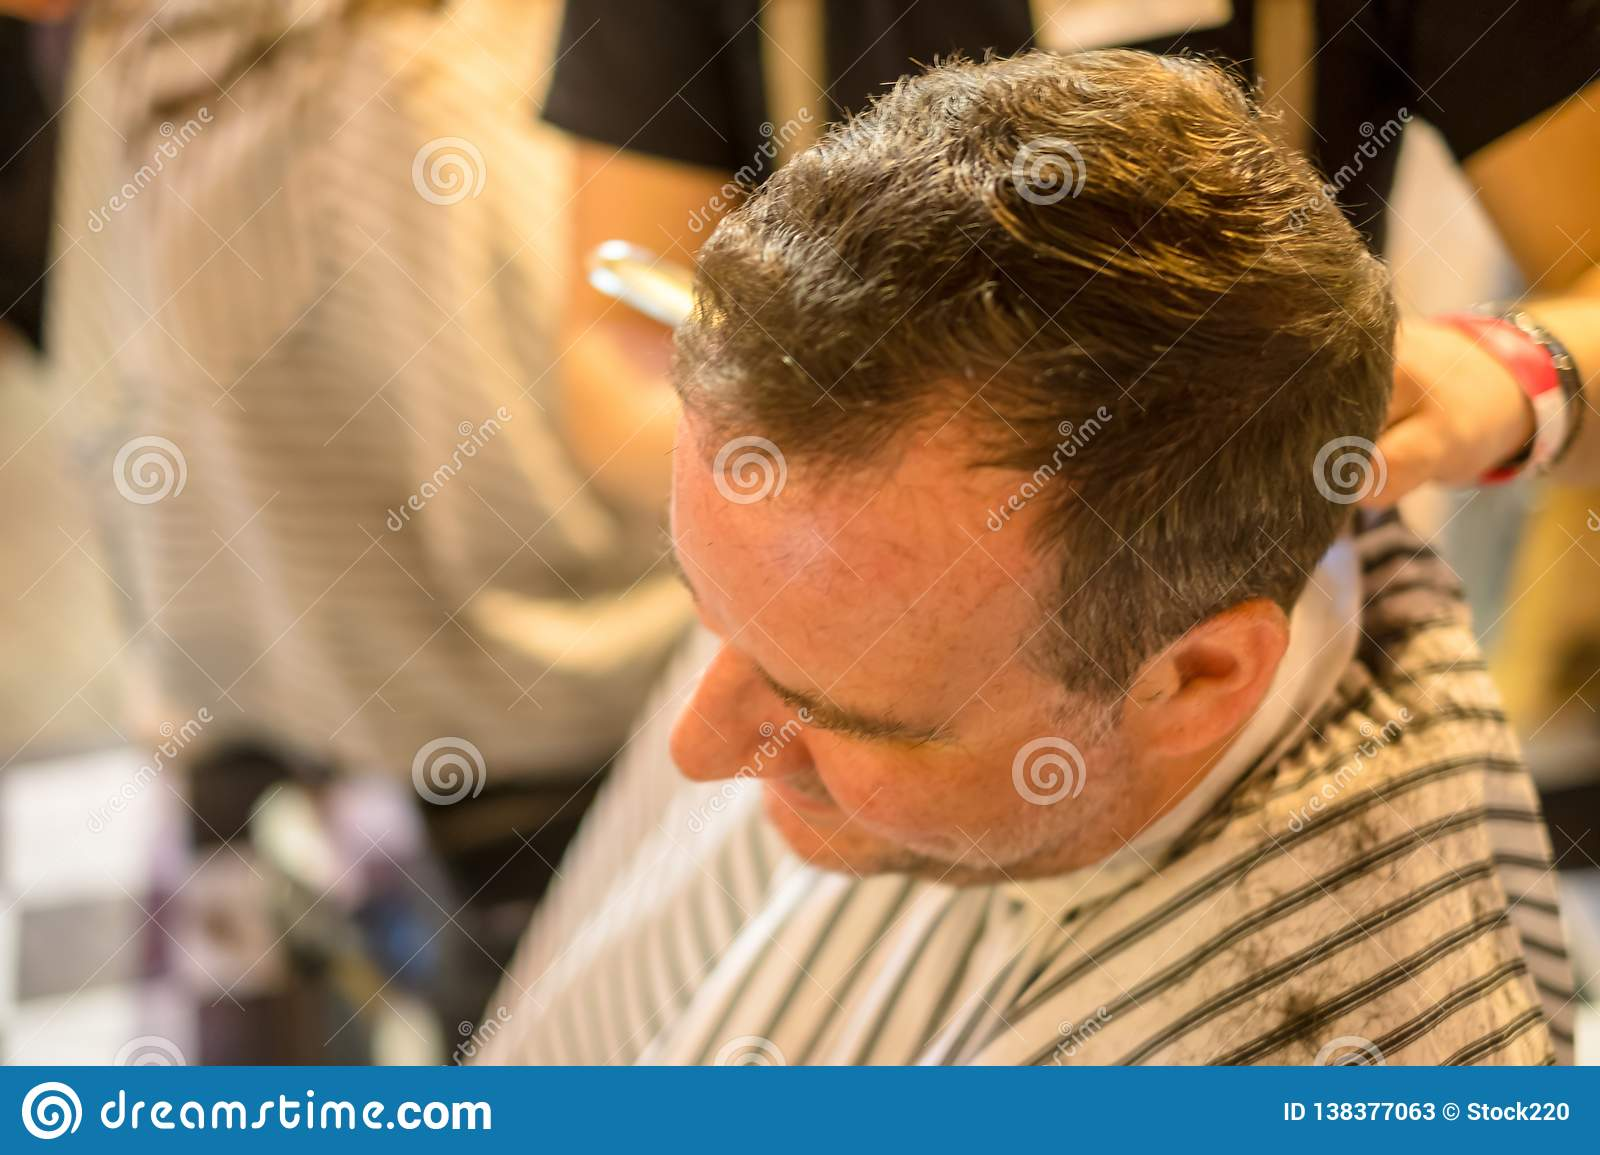 Guy at the hairdresser